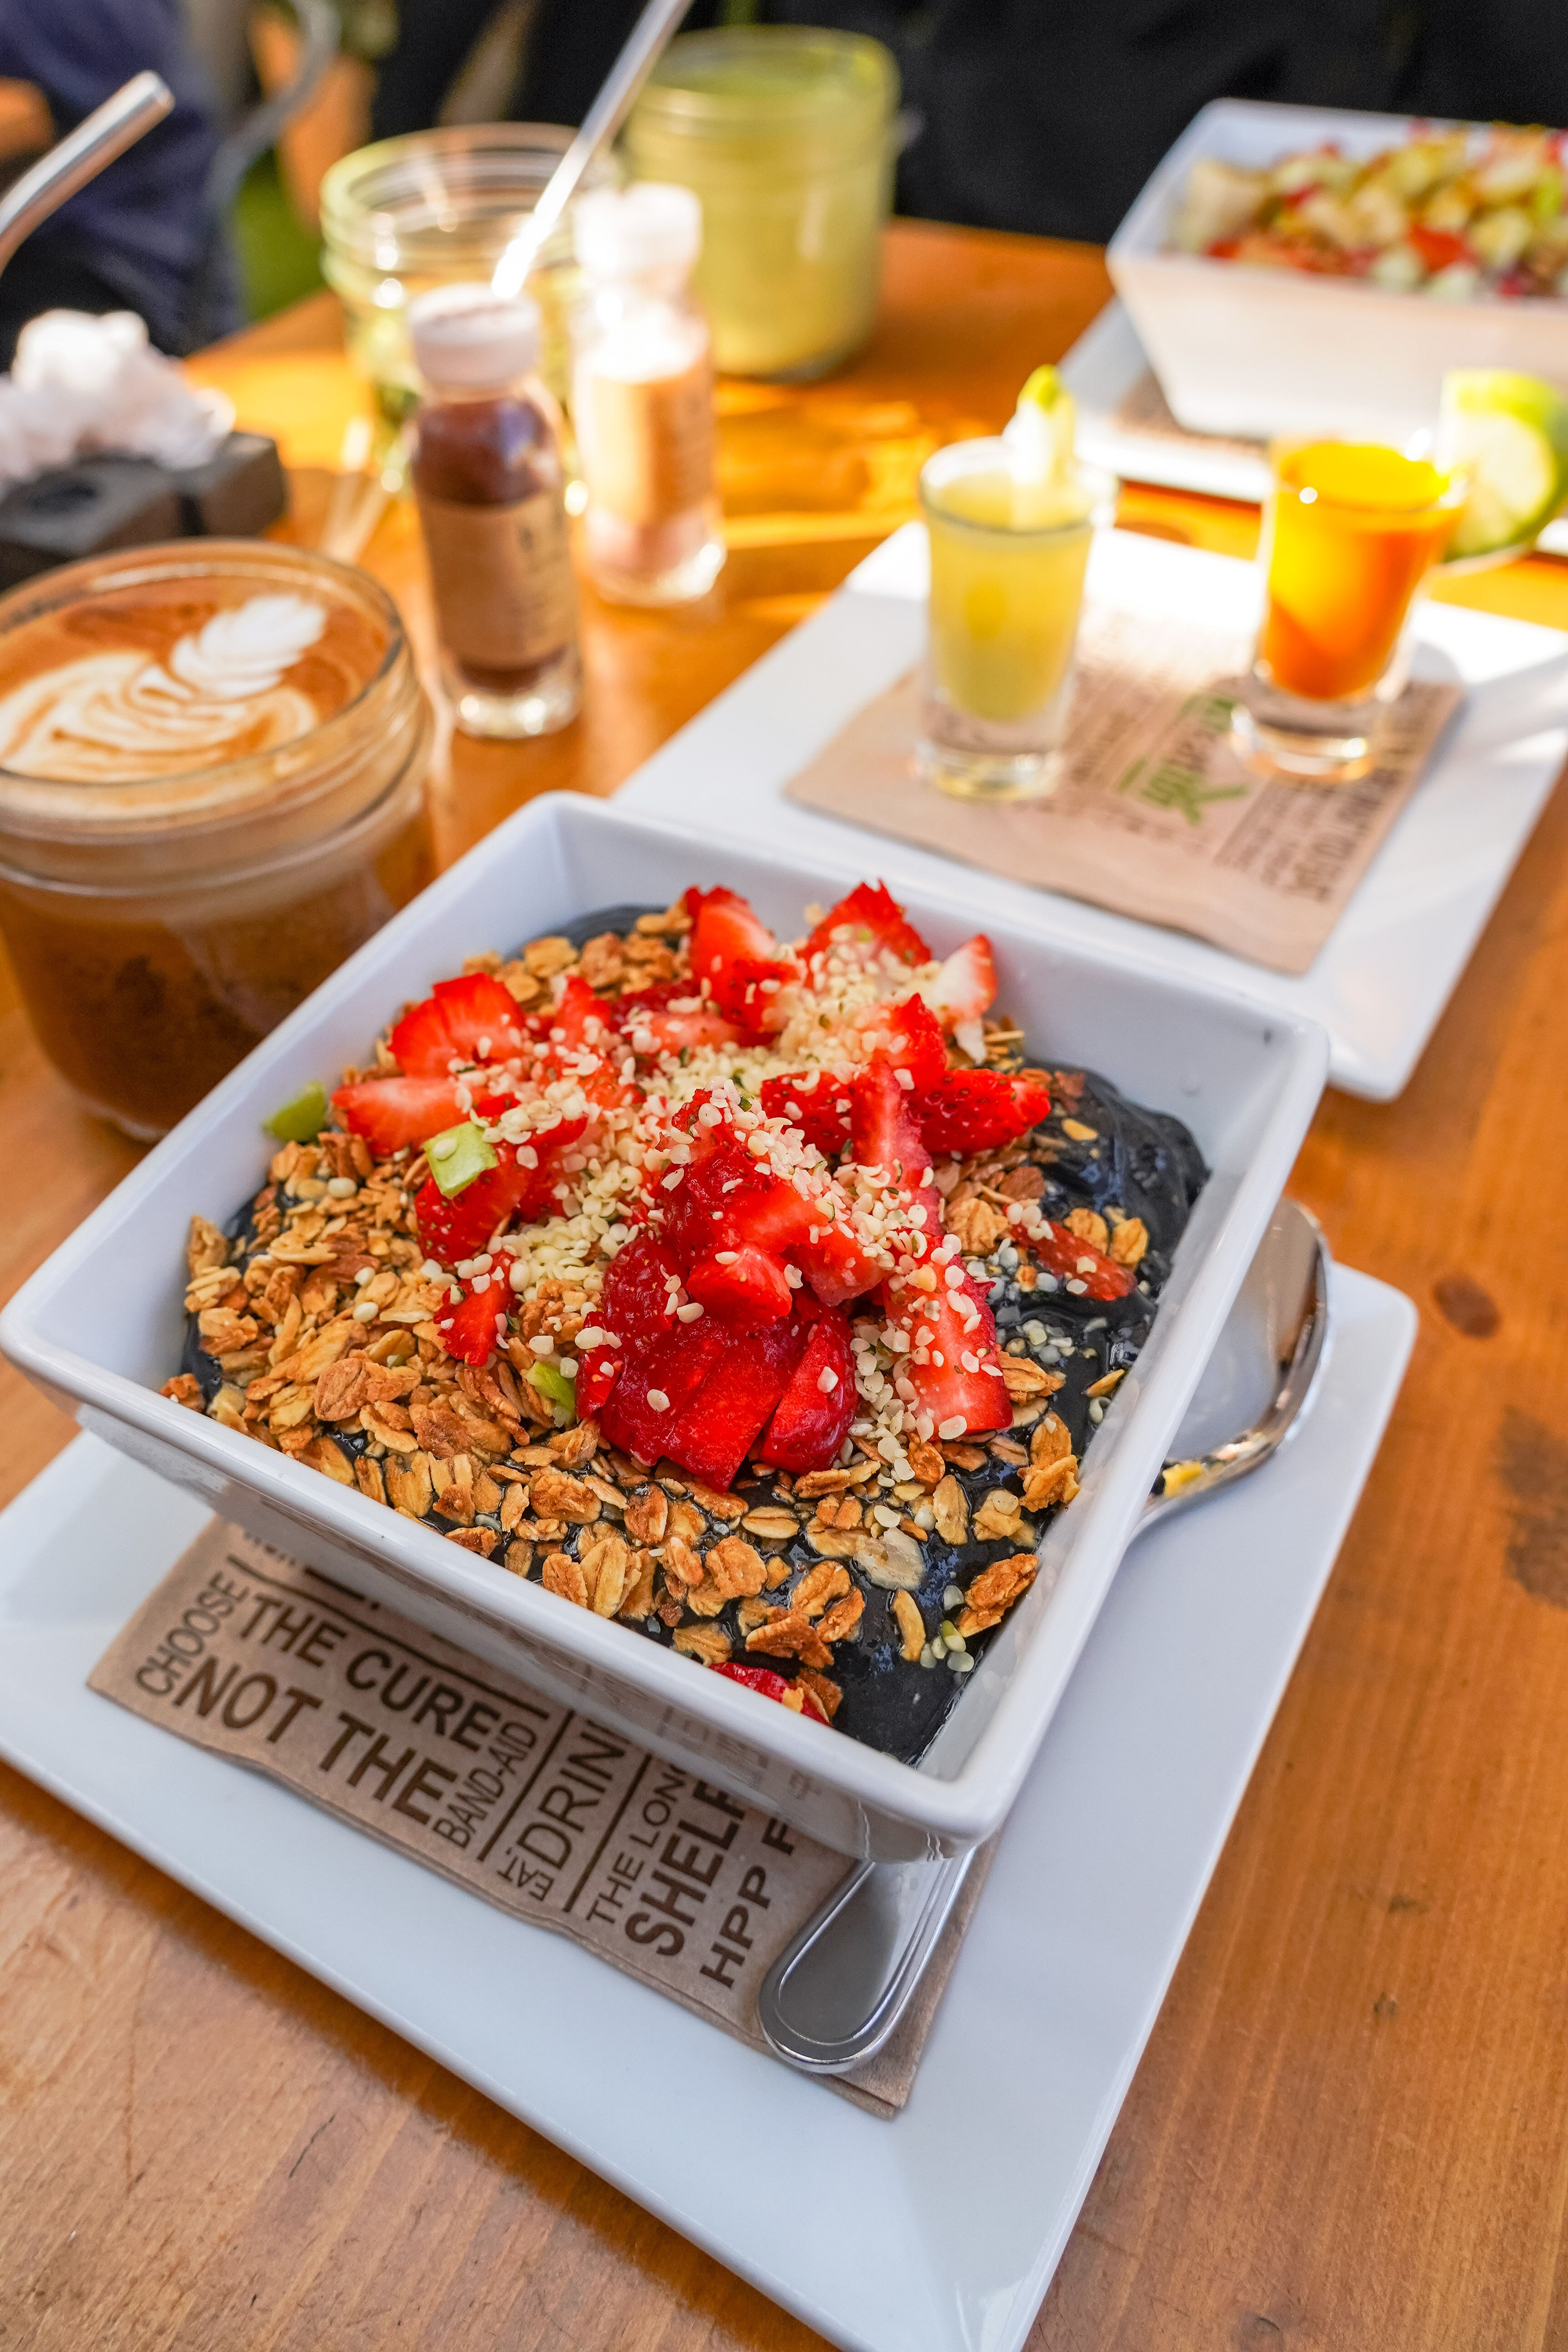 Discover The Best Healthy Restaurants Good For You Brunches And Vegan Friendly Ice Cream Spots Nearby Healthy Good Healthy Recipes Healthy Restaurant